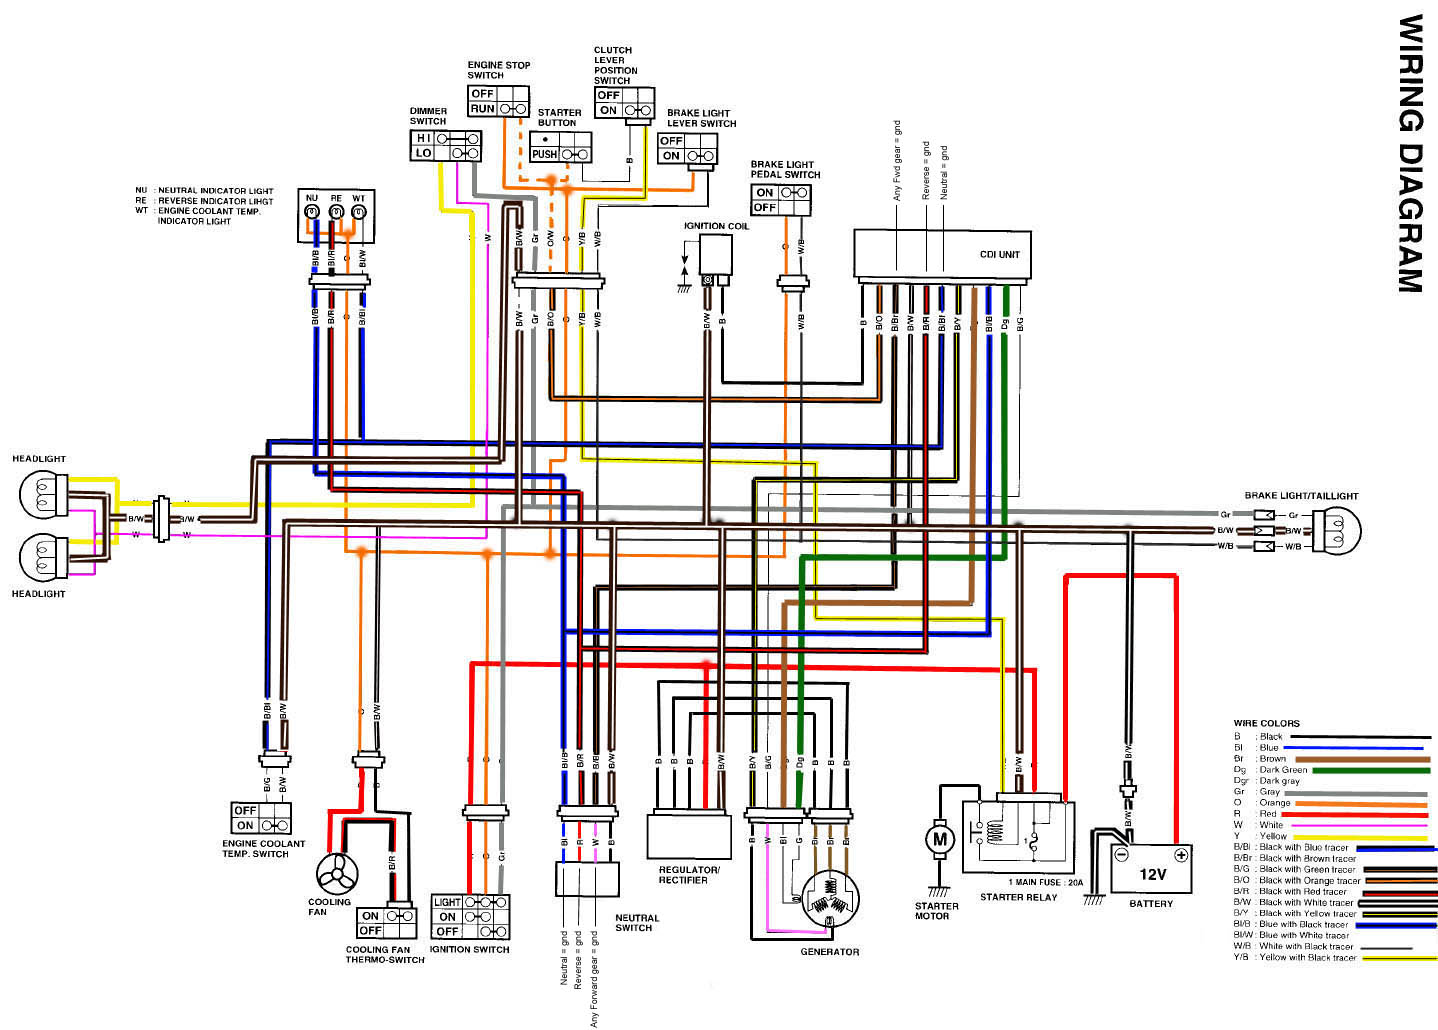 colored wire diagram - suzuki z400 forum : z400 forums yfz 450 wiring schematic #12